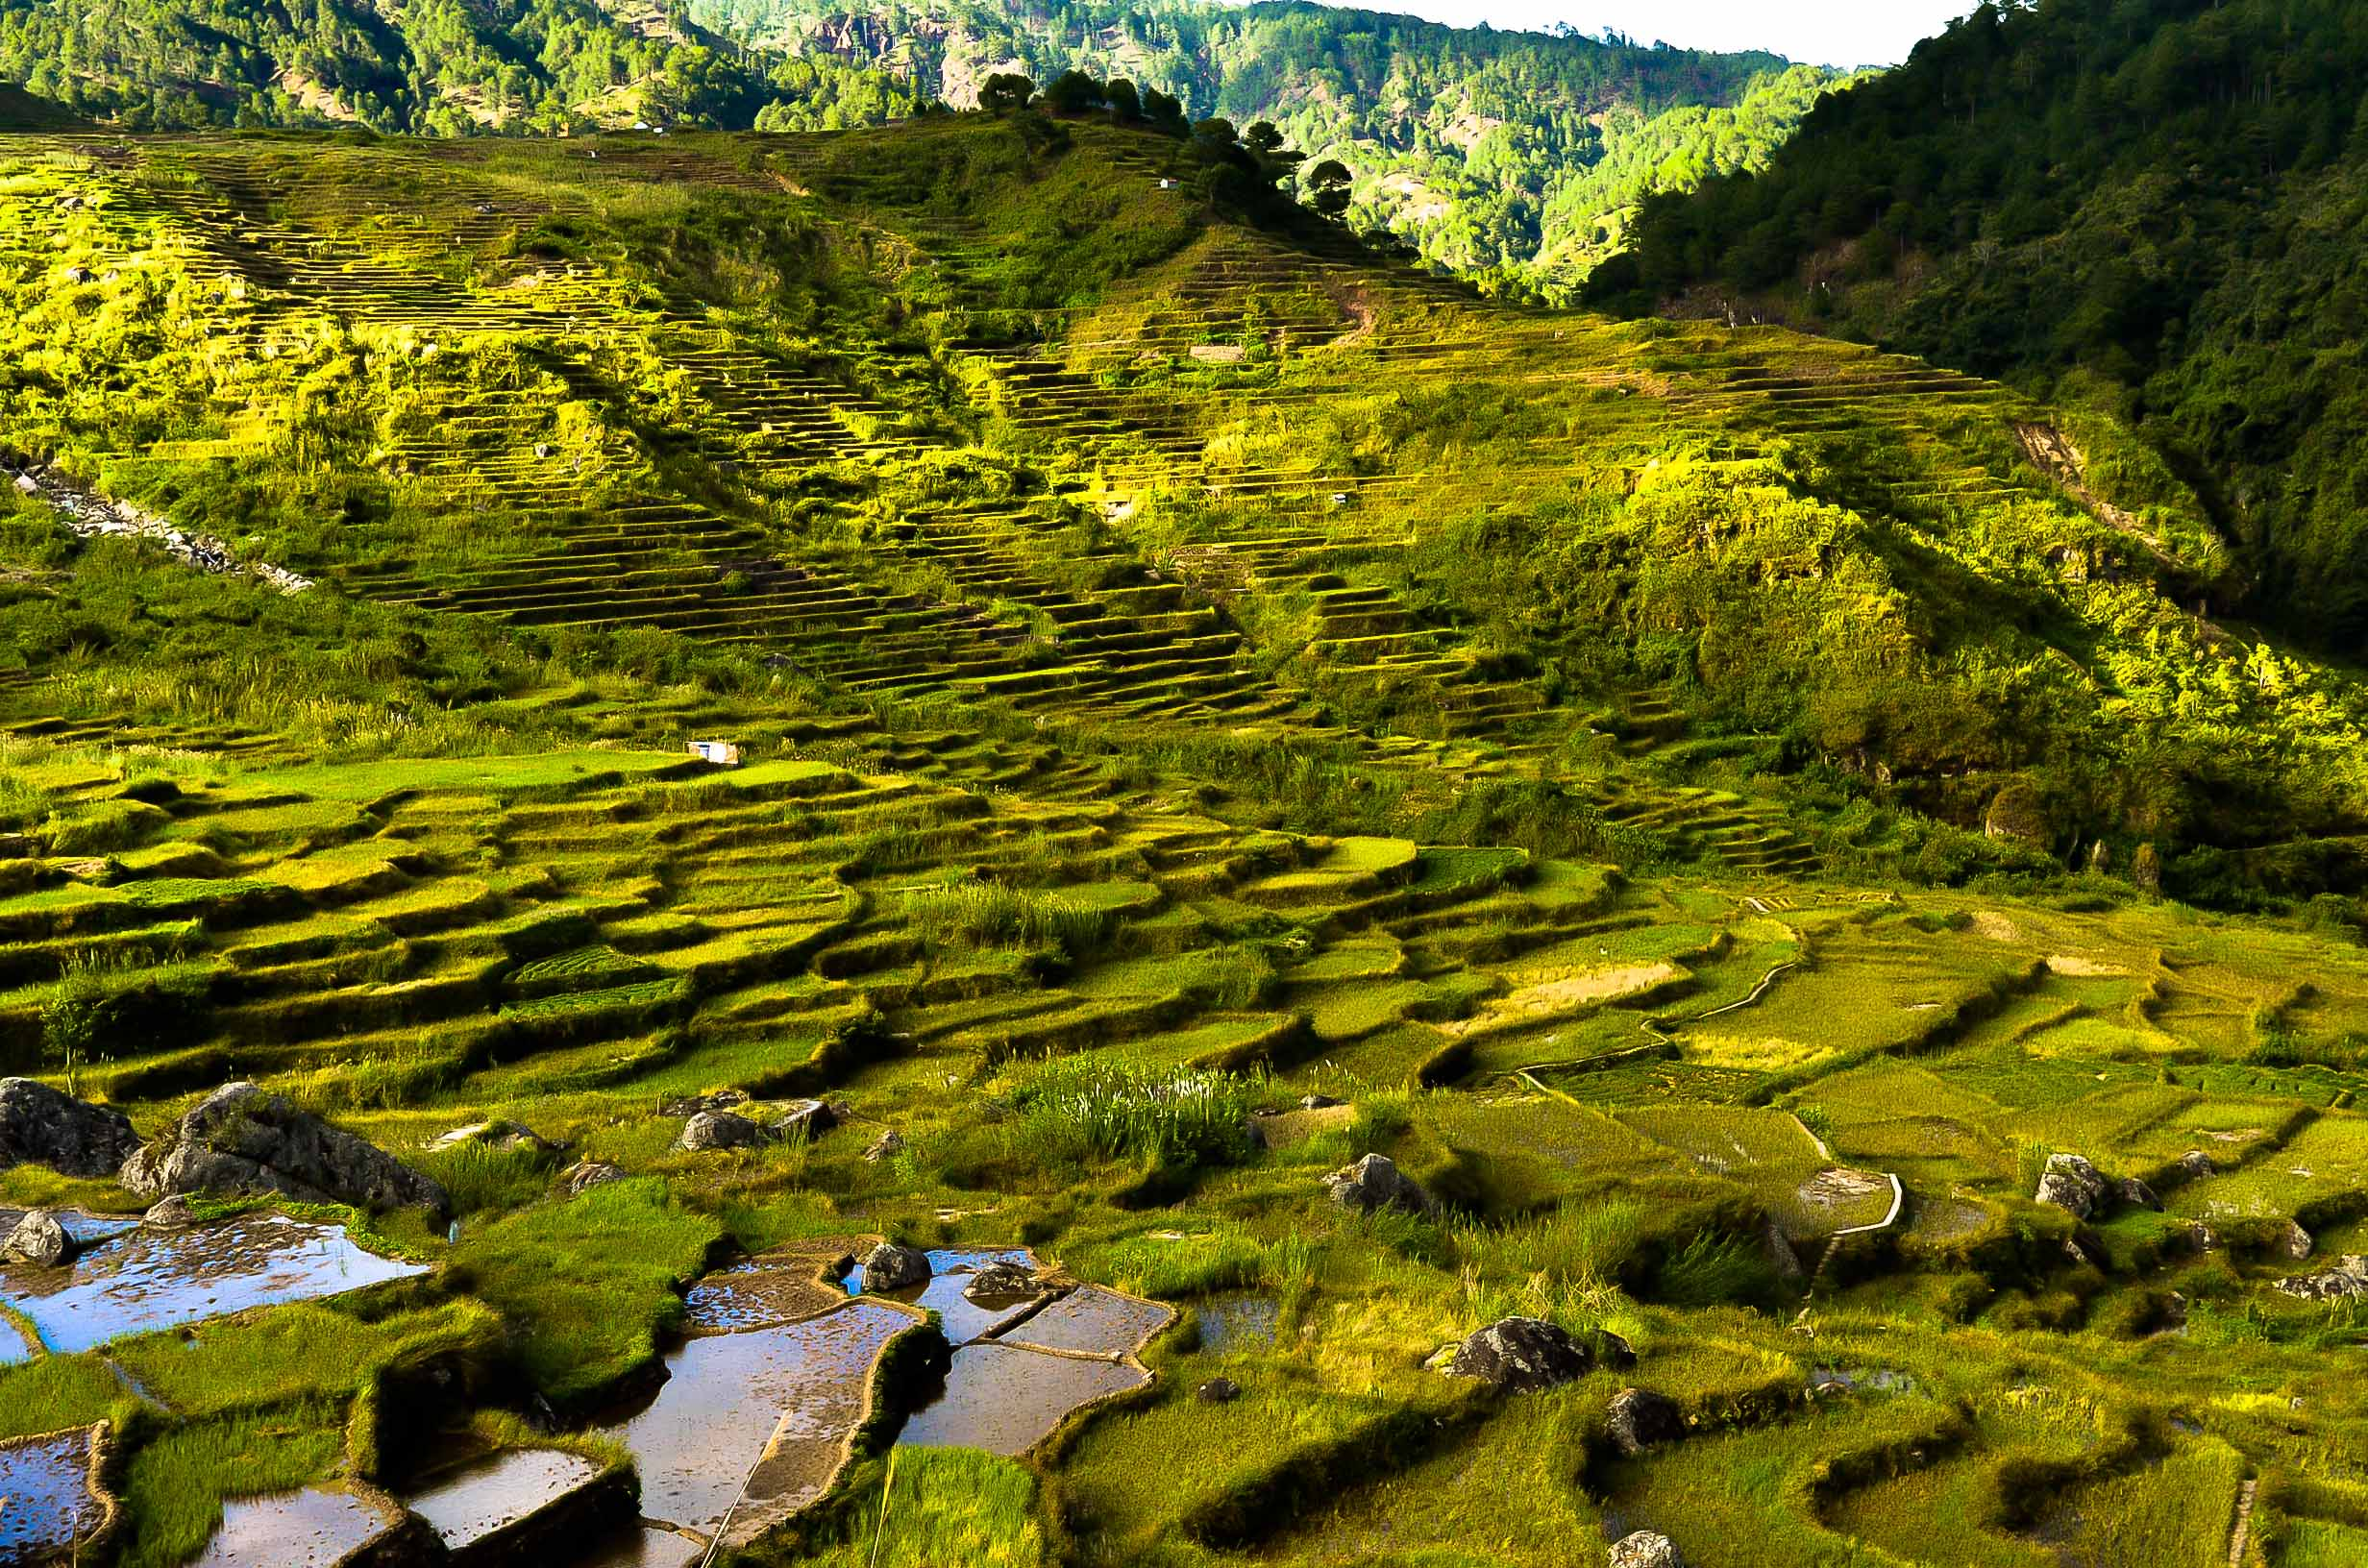 Sunlight shines on green terraces paddy fields of the KIlong Rice Terraces in Sagada, Philippines